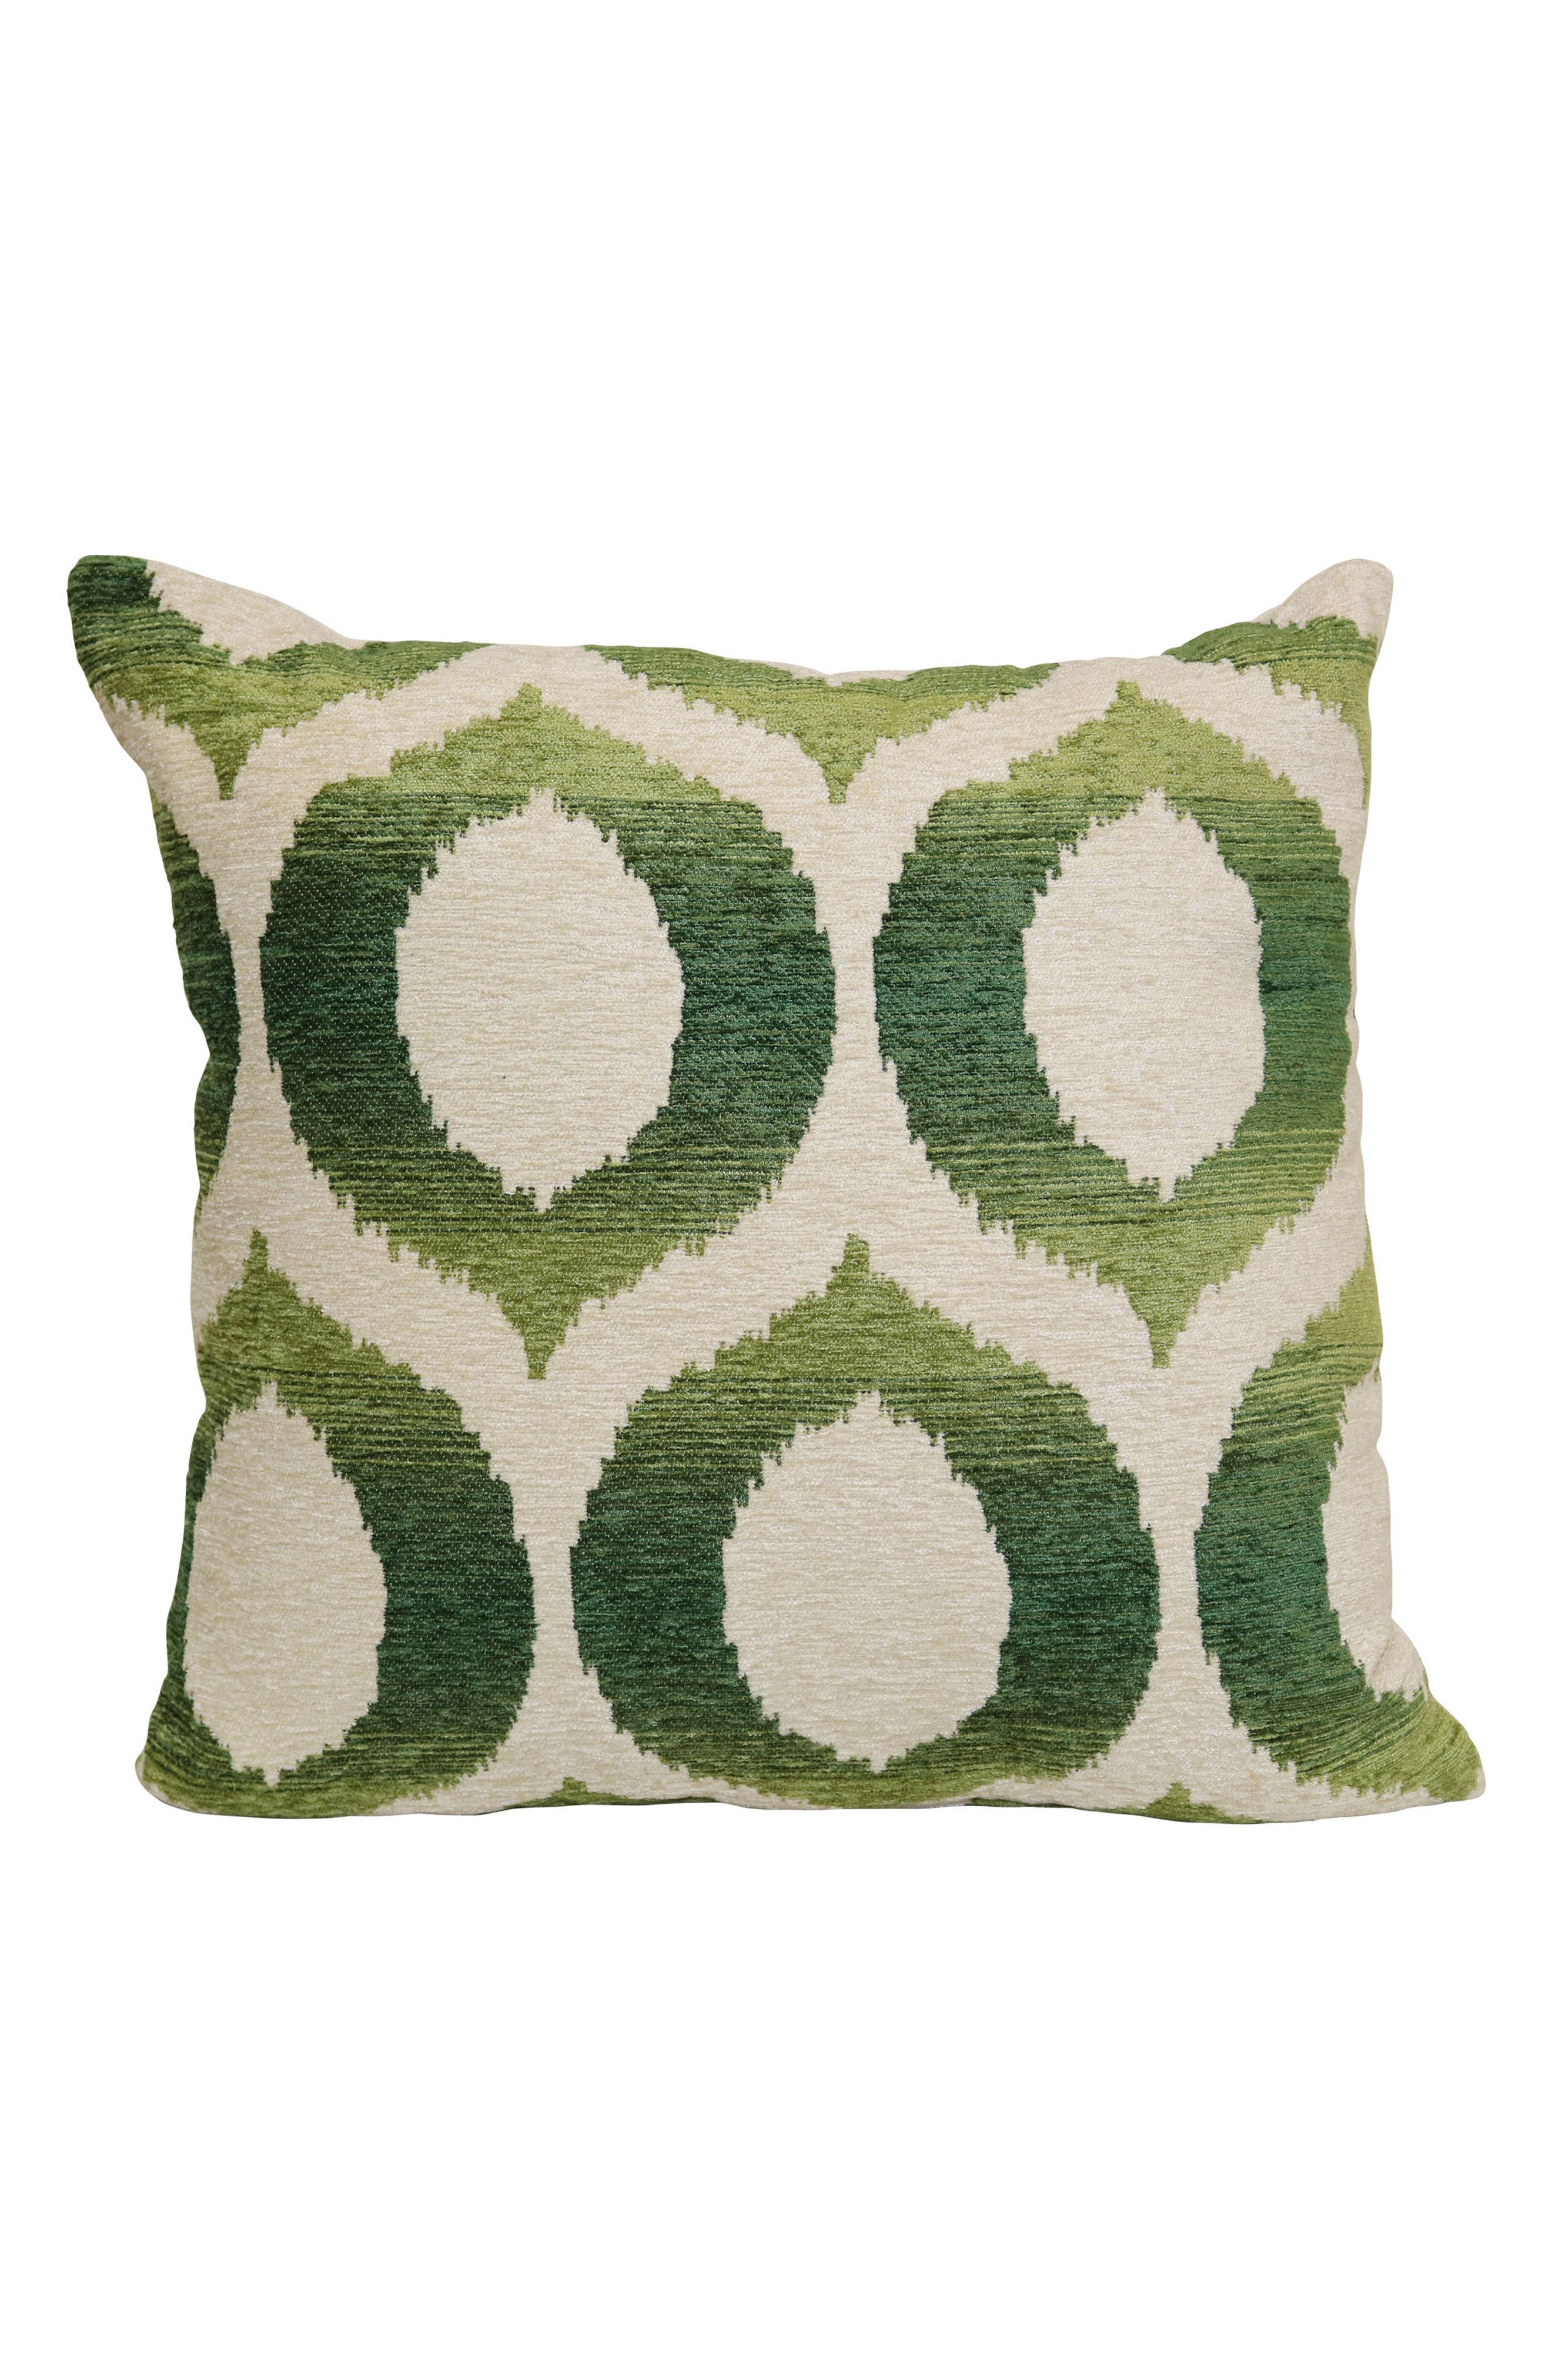 Alternate Image 1 Selected - Brentwood Originals Olson Accent Pillow